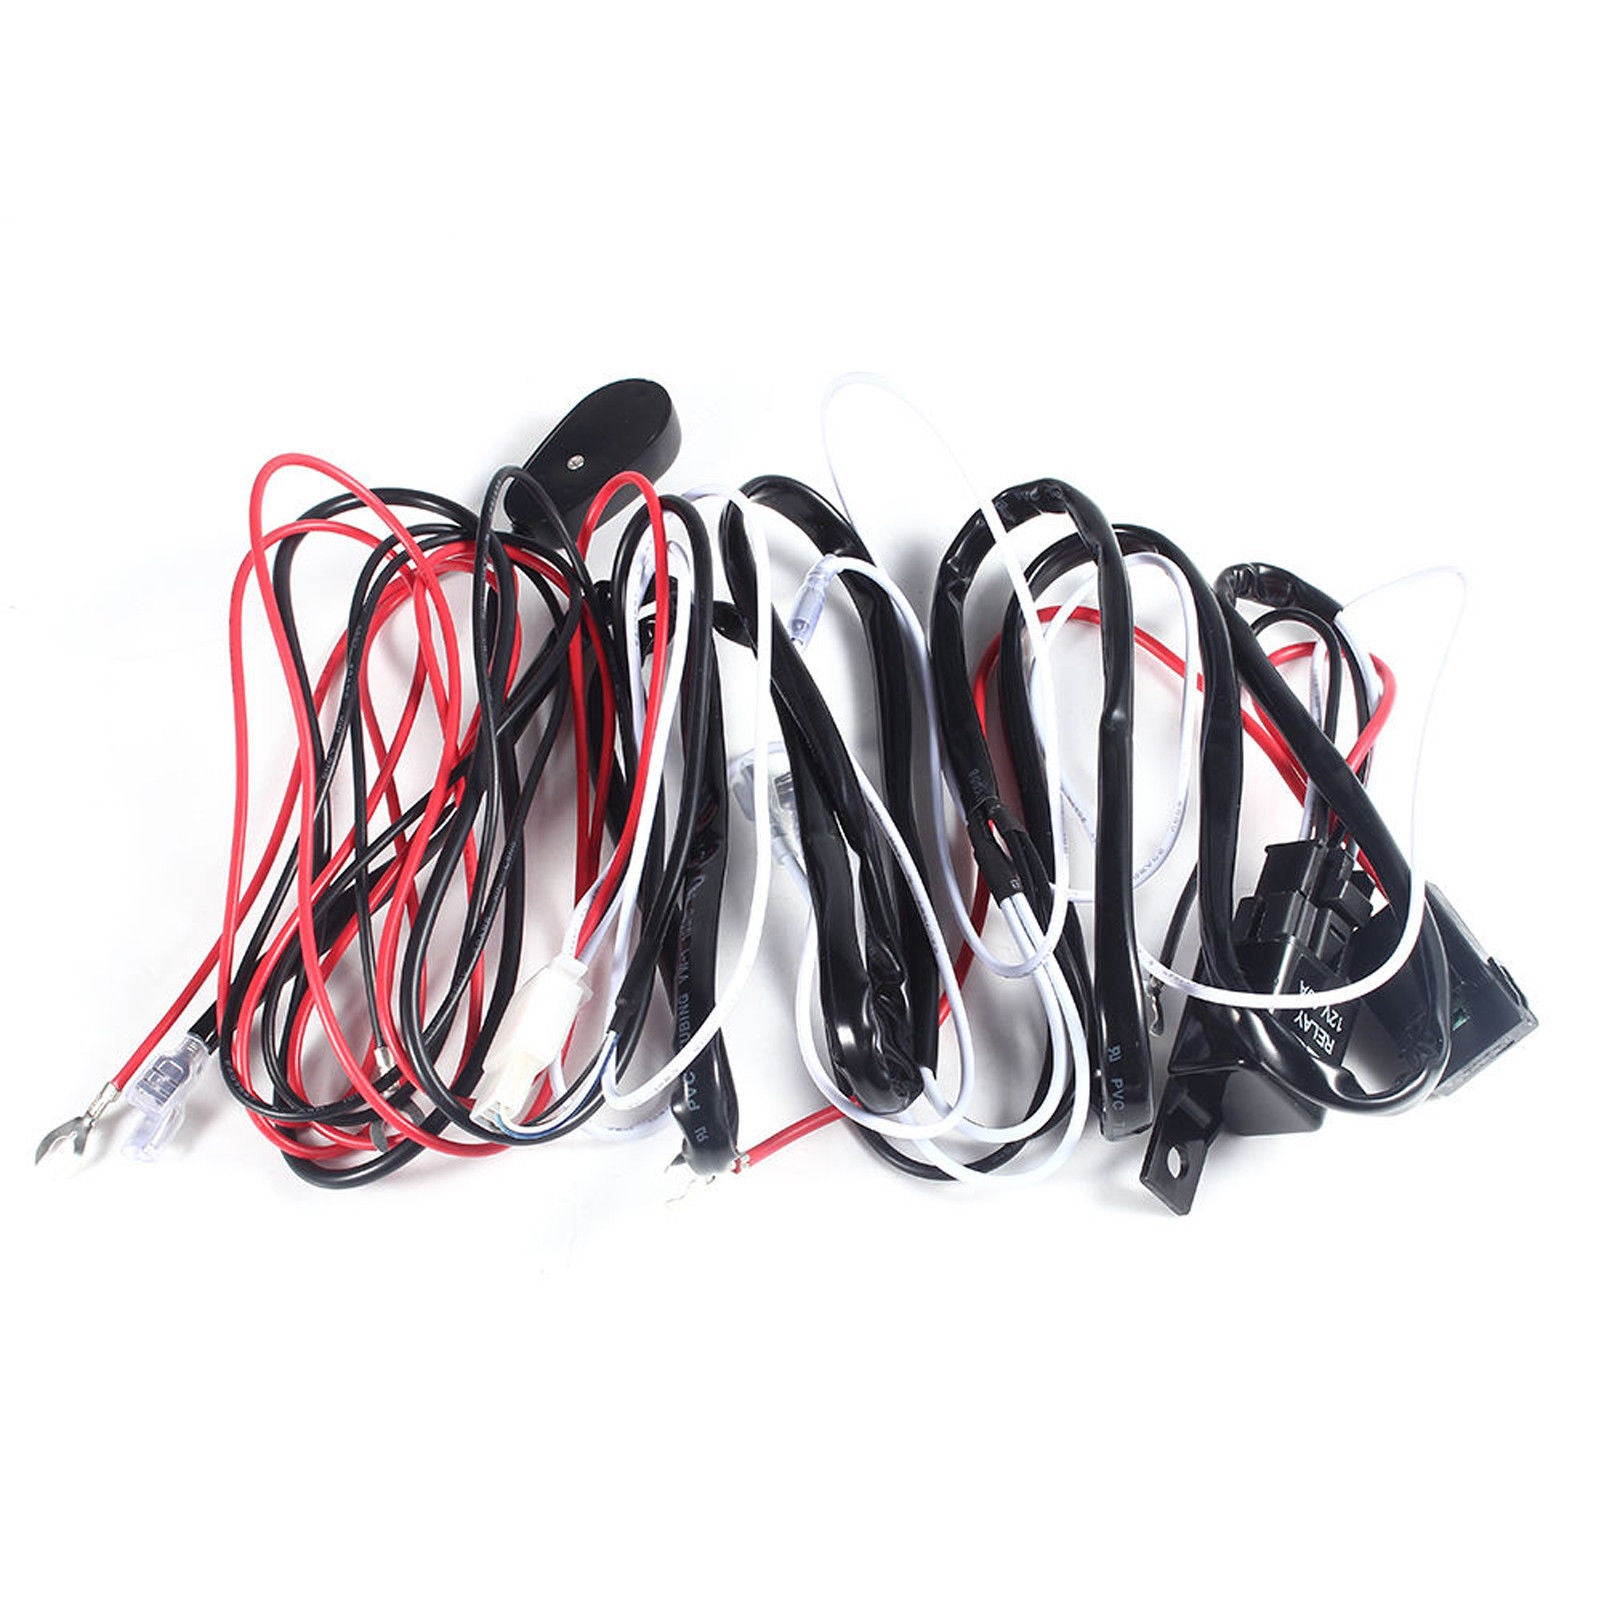 Universal 9ft Relay Wiring Harness Kit For Led Work Light Bar Off 40a On Switch 1 To Road 72w